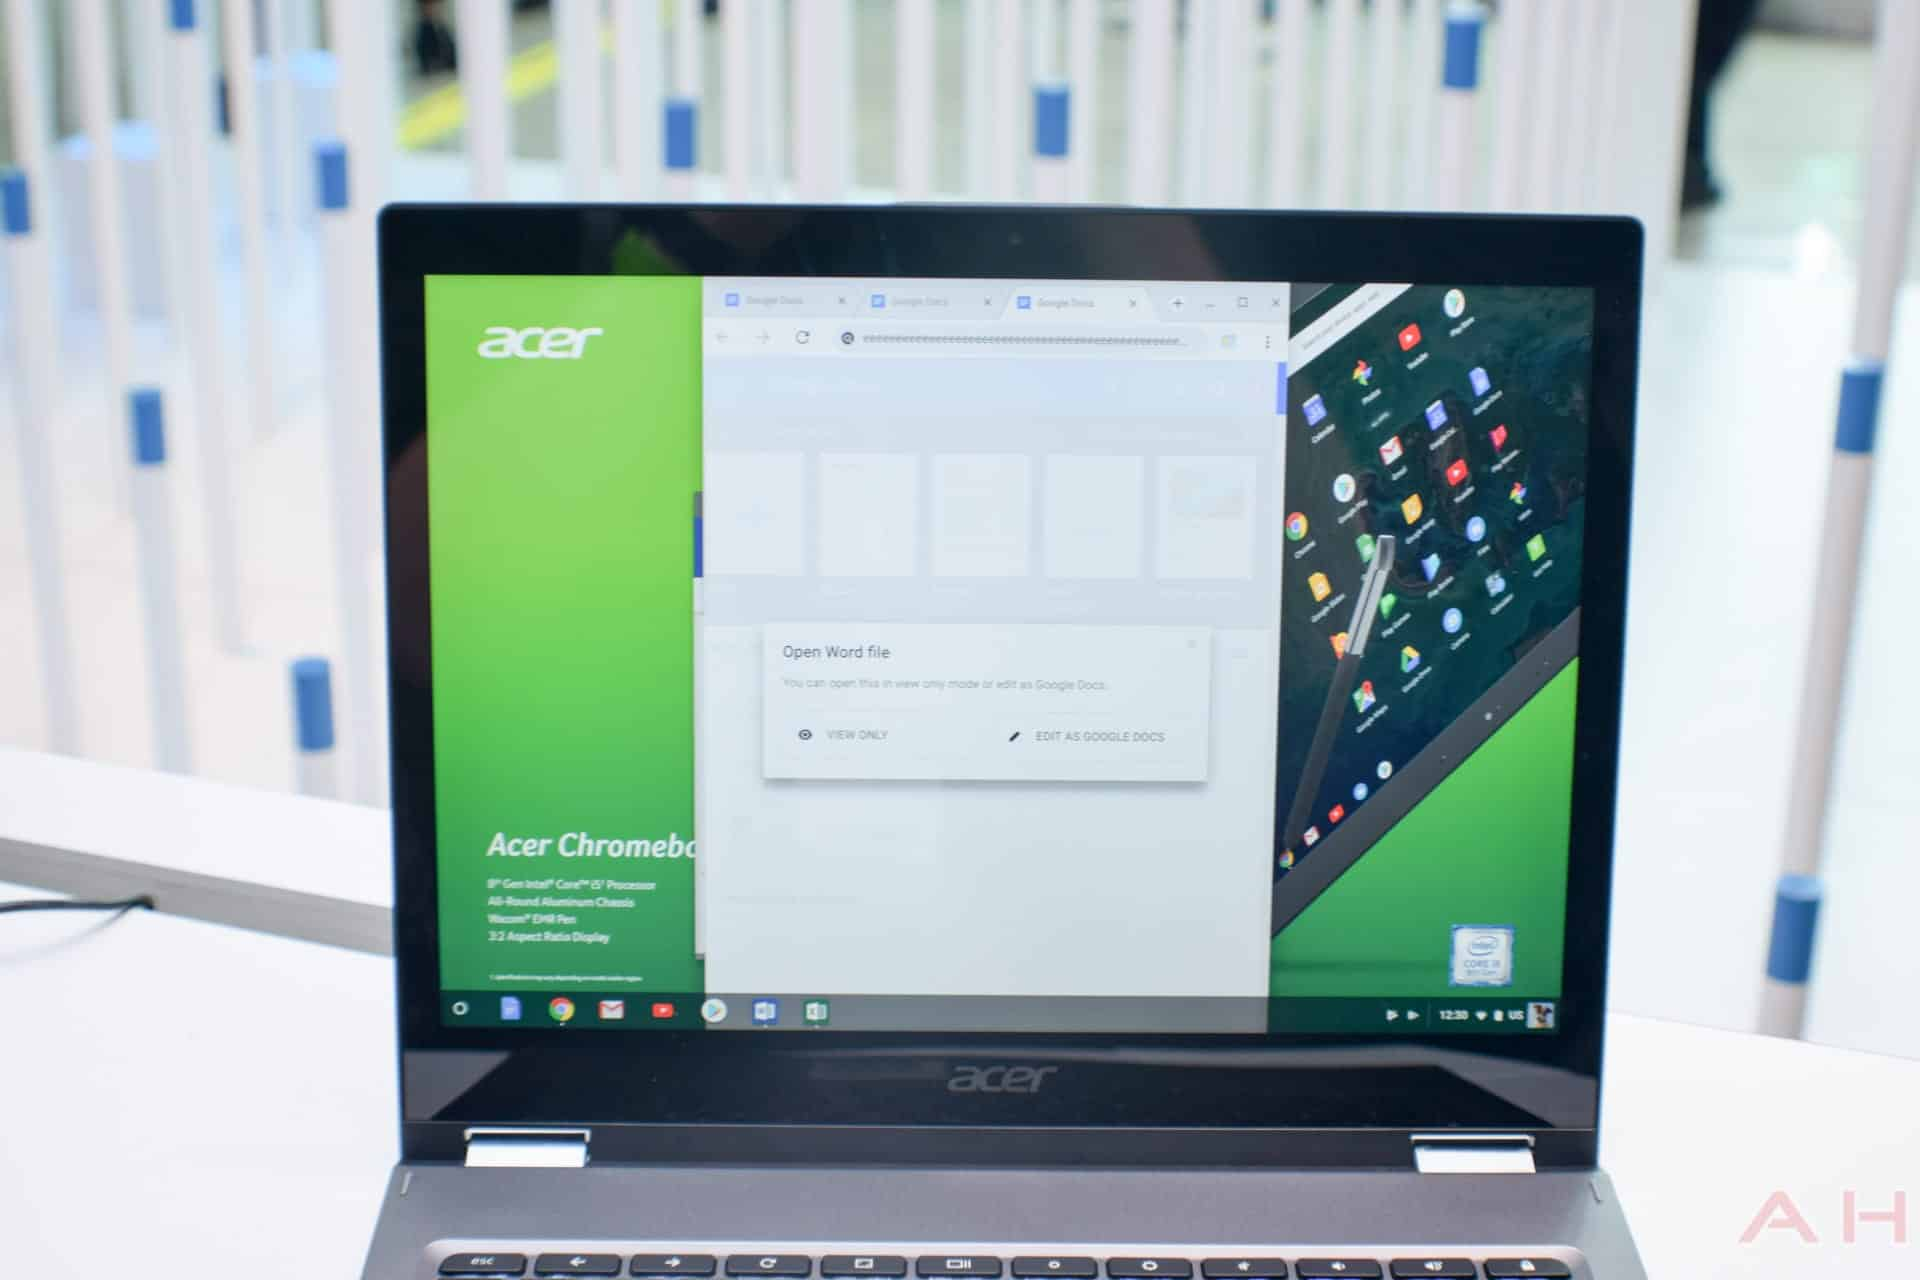 Acer Chromebook Spin 13 AM AH 2